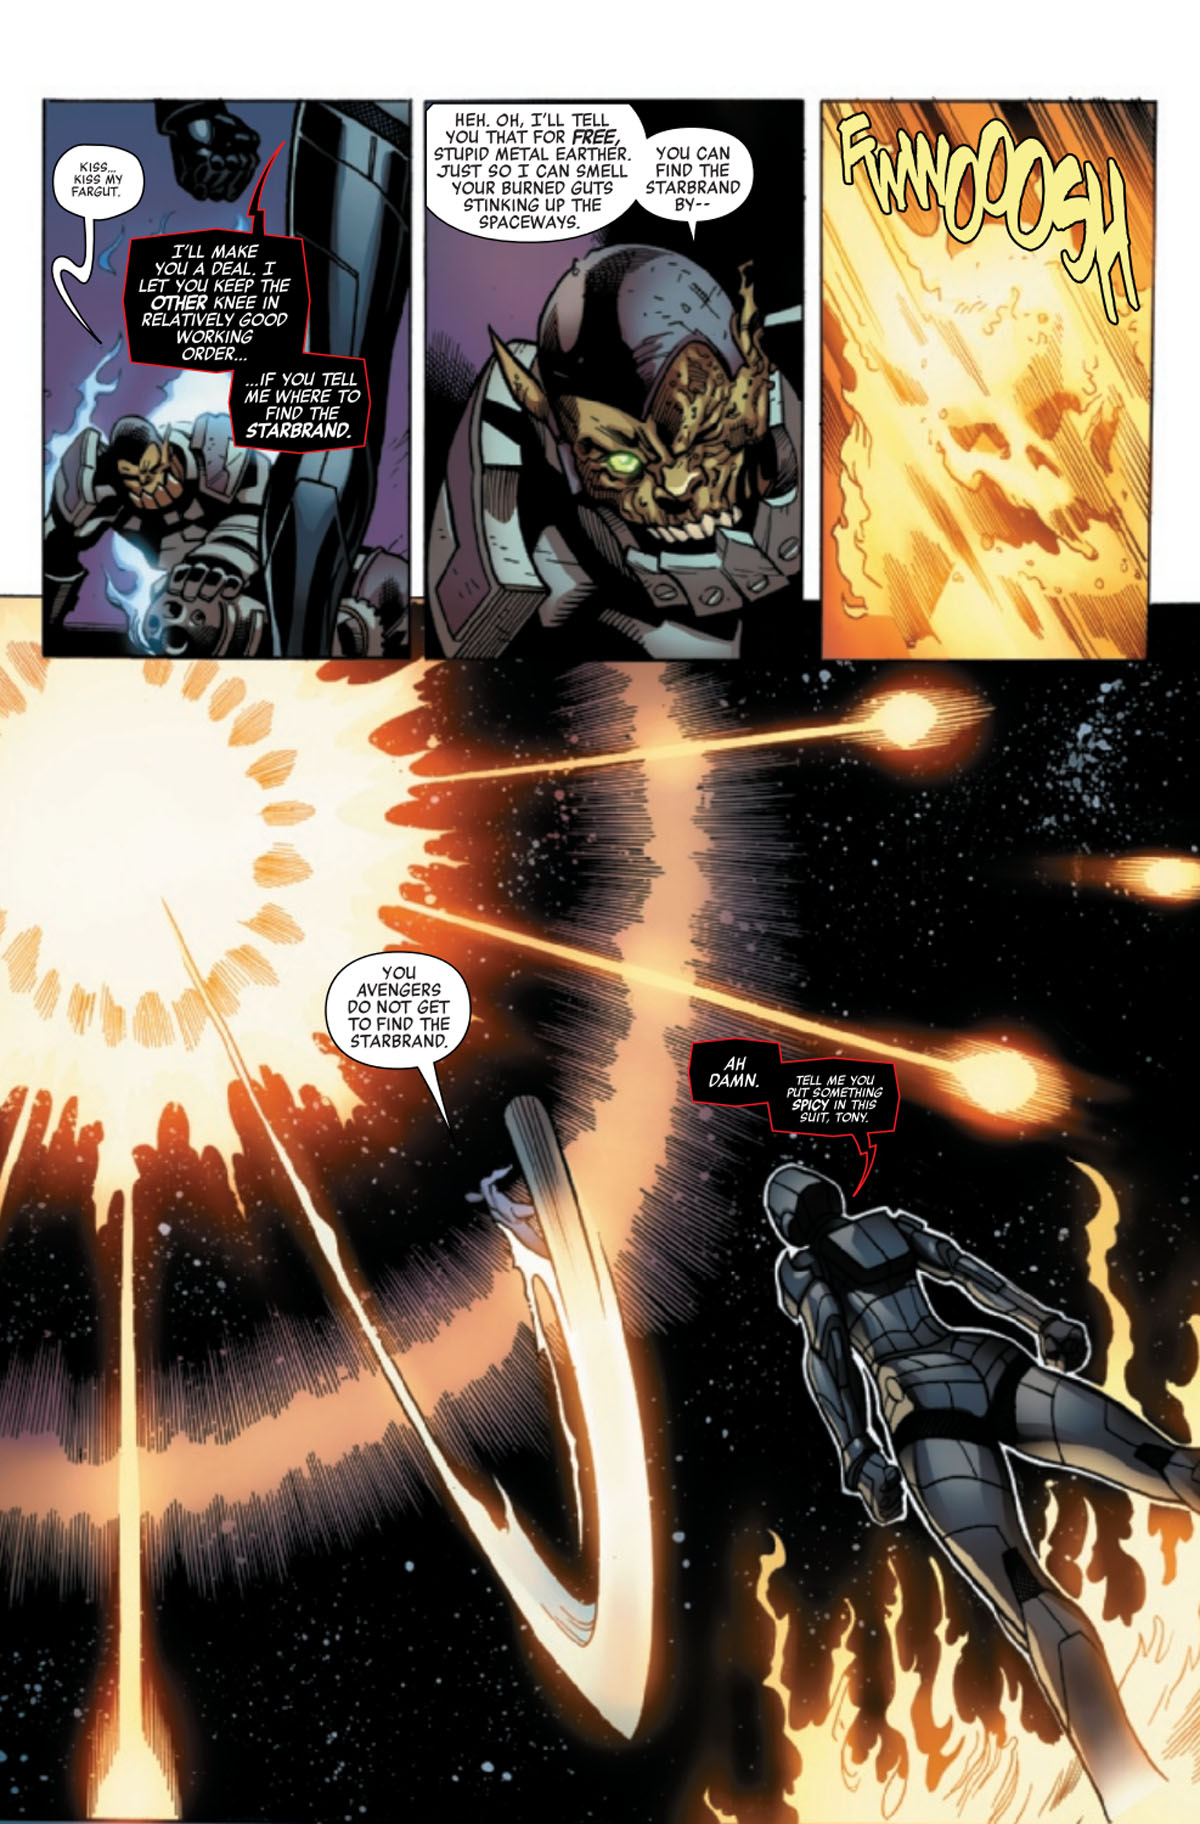 Avengers #29 page 4